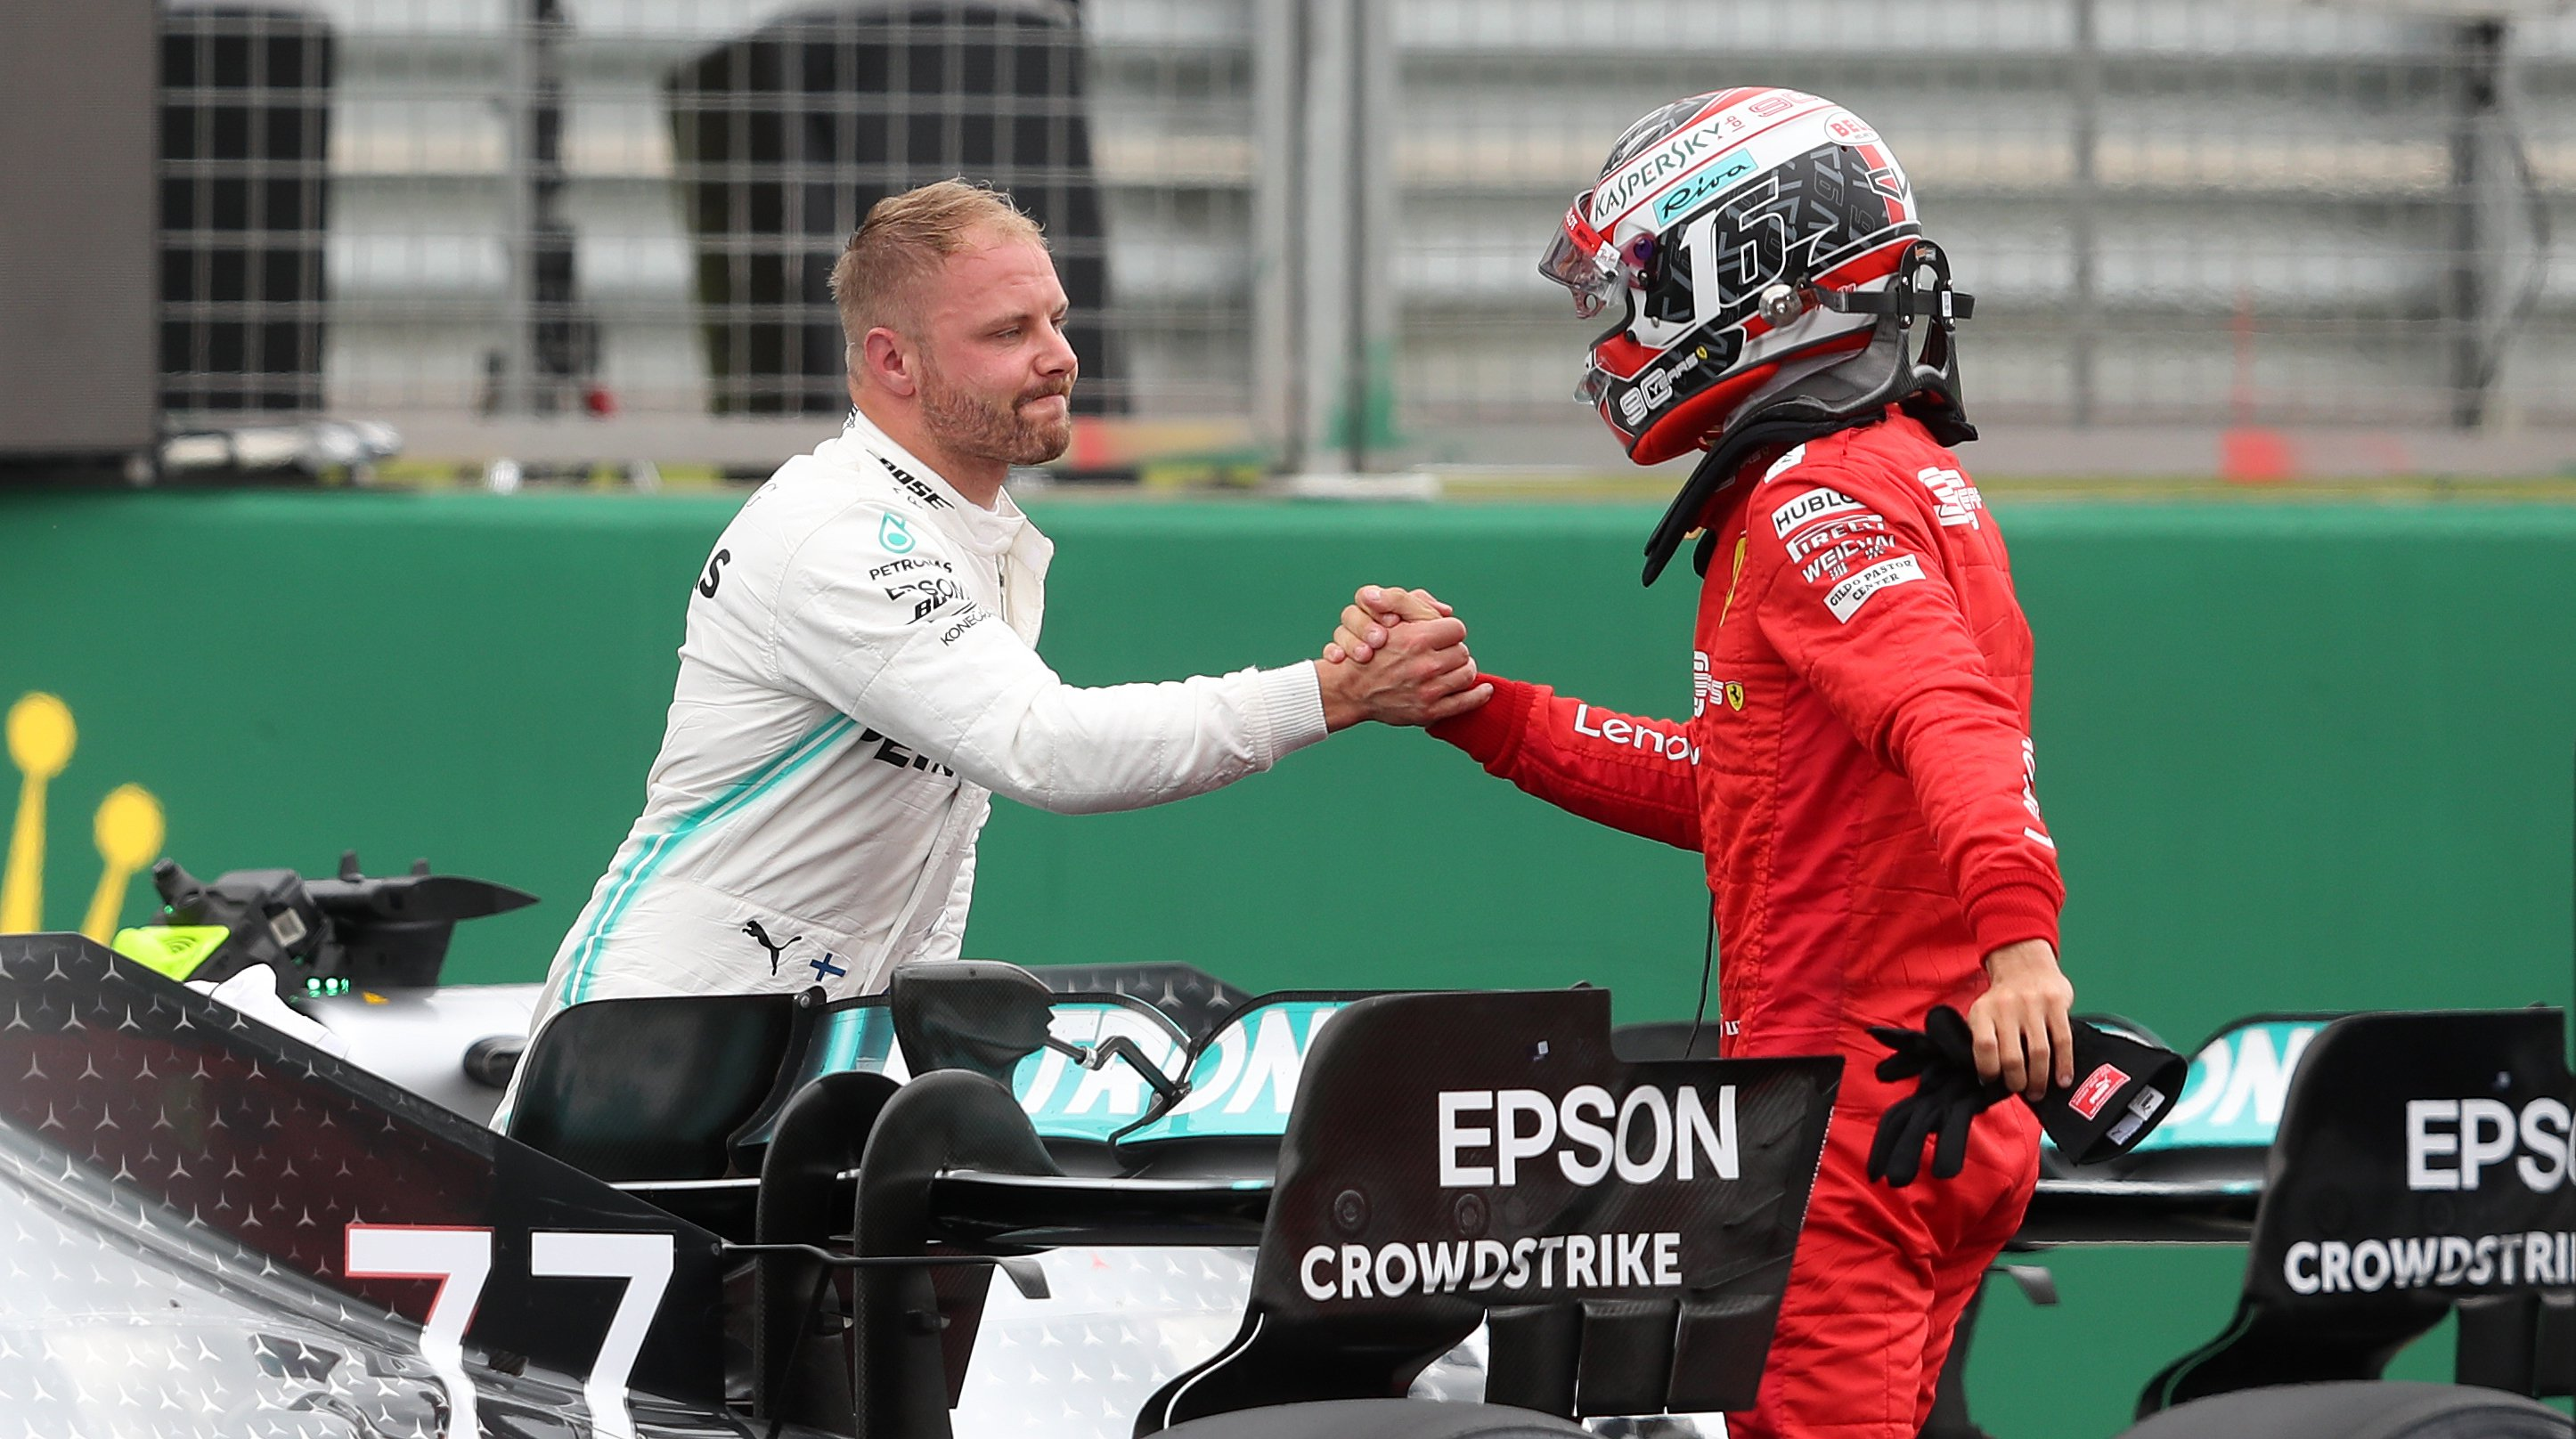 Valtteri Bottas and Charles Leclerc investigated for possible Covid-19 breach